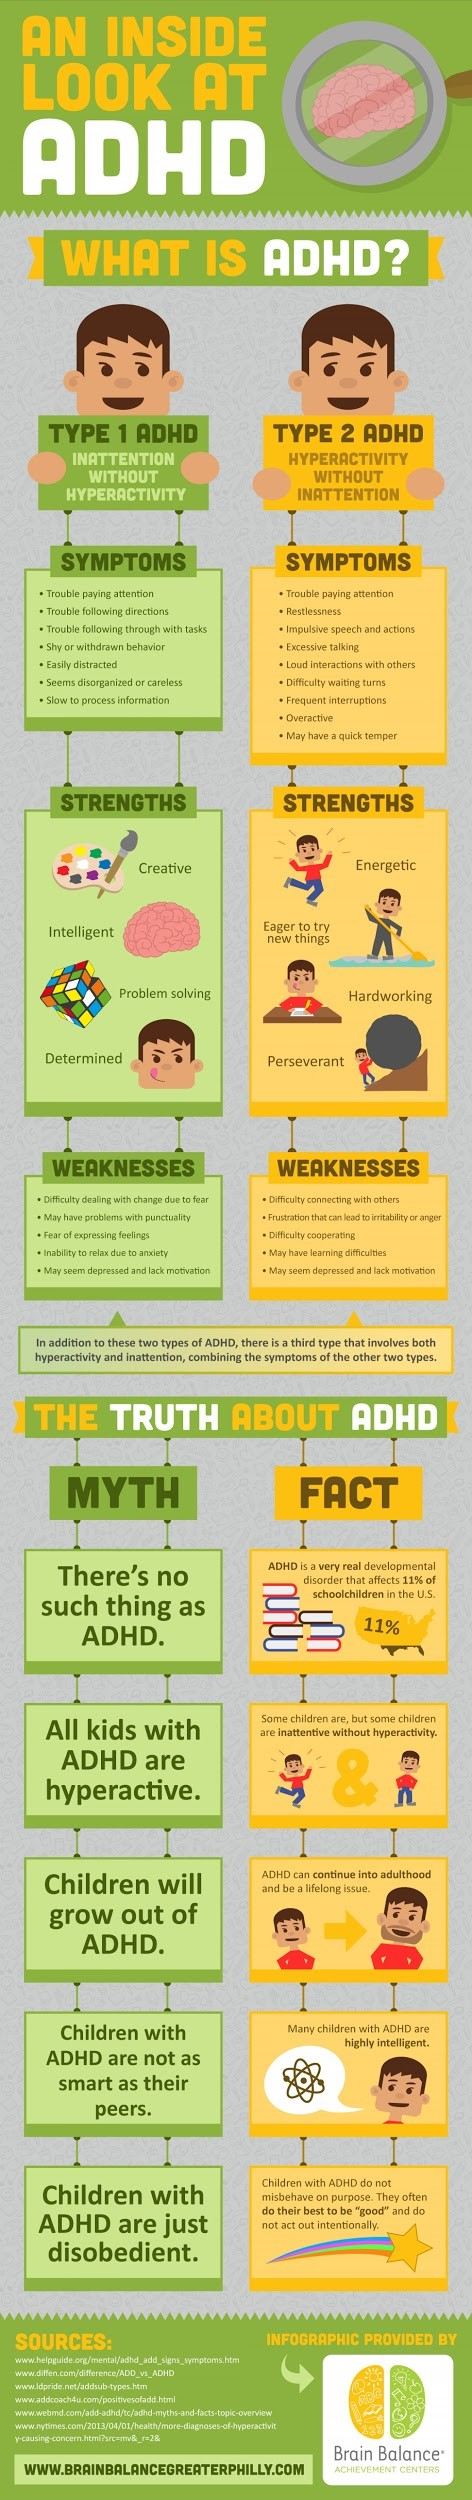 ADHD | Division of Student Affairs